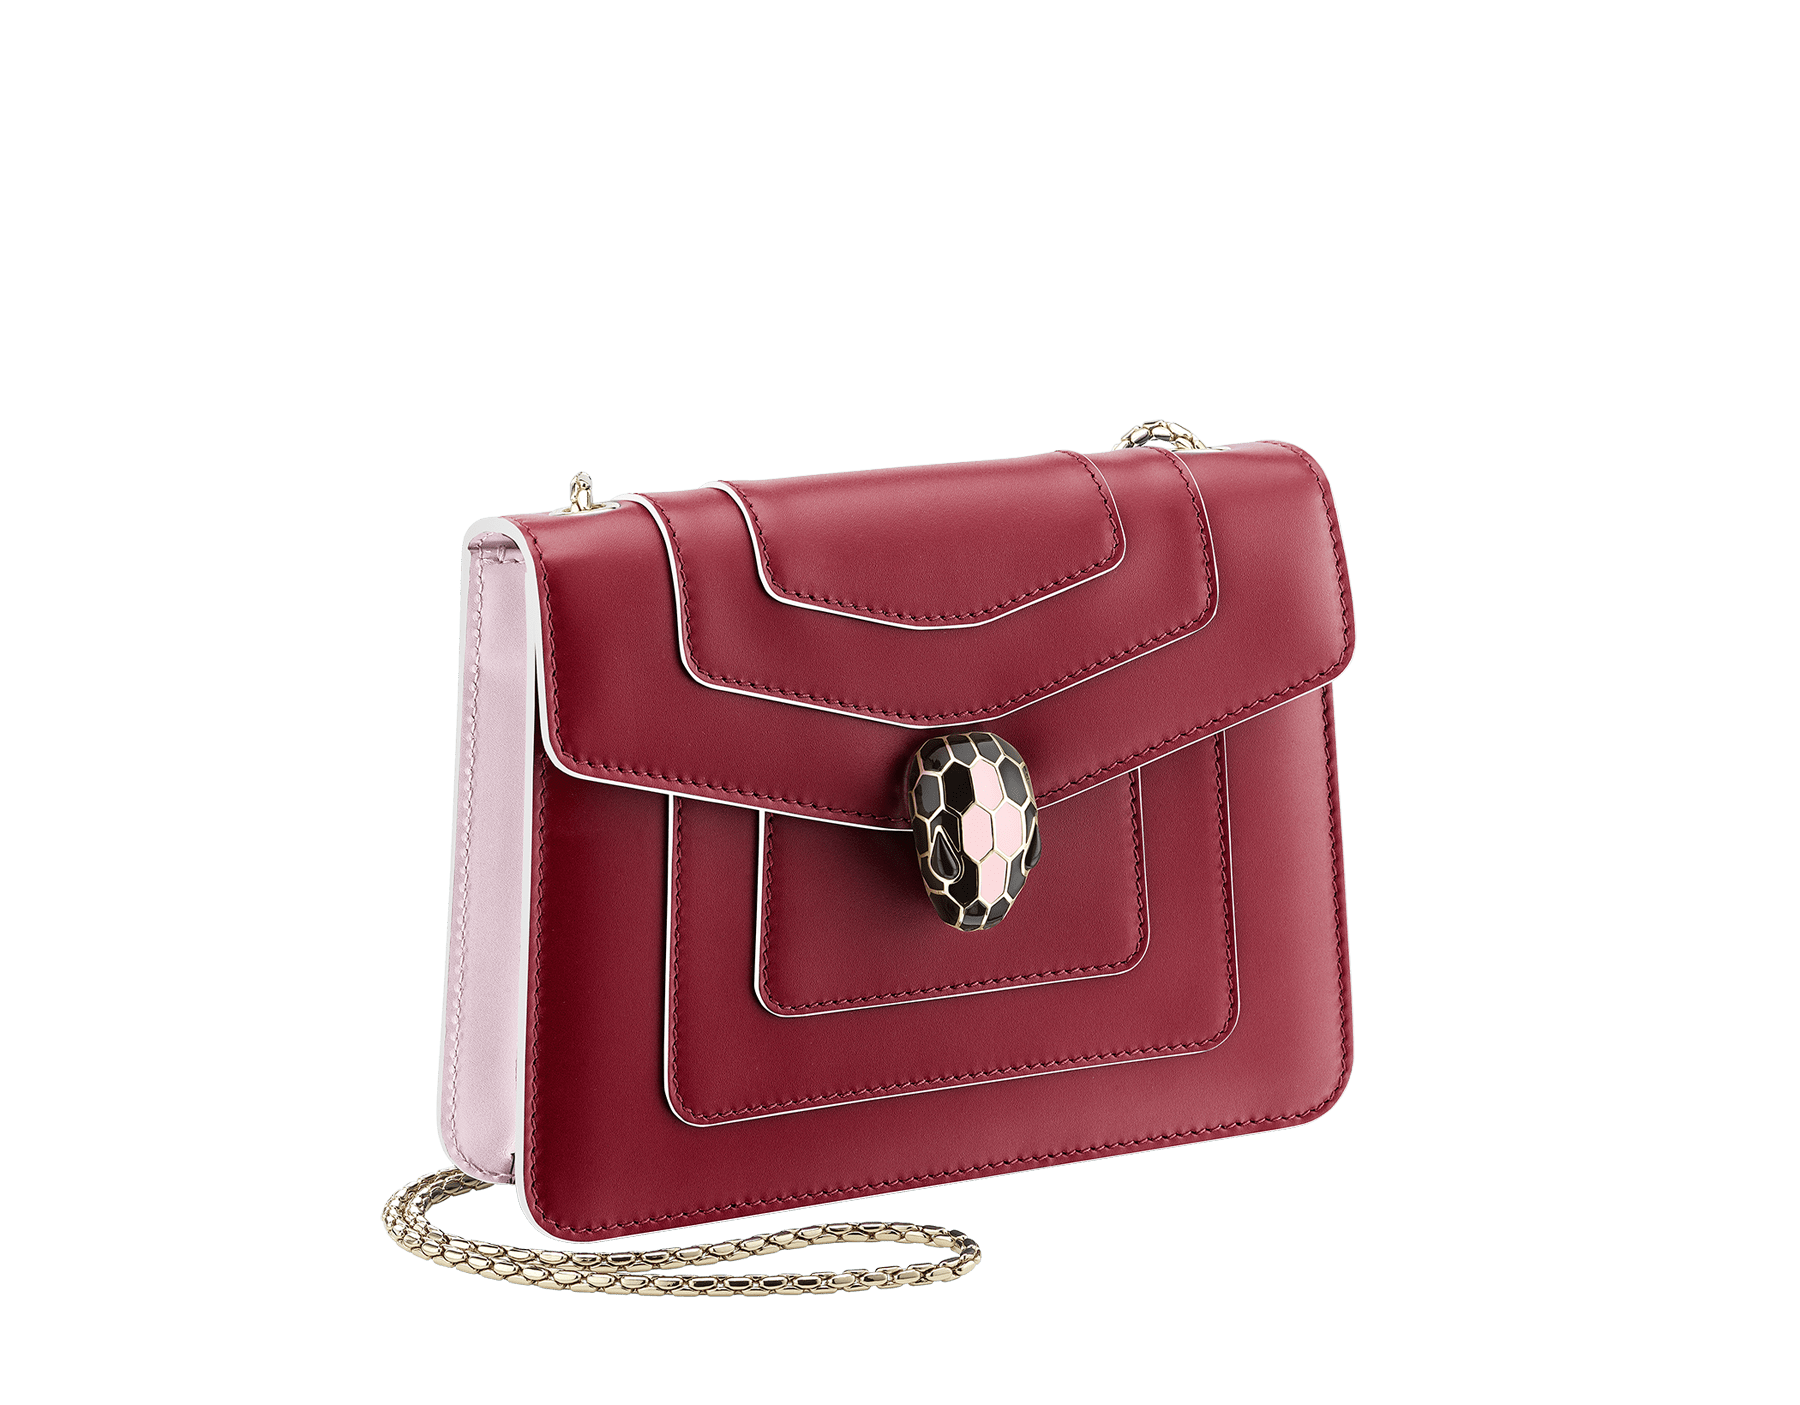 Serpenti Forever crossbody bag in Roman garnet calf leather, with rosa di francia calf leather sides. Iconic snakehead closure in light gold plated brass embellished with black and white enamel and green malachite eyes. 289035 image 4